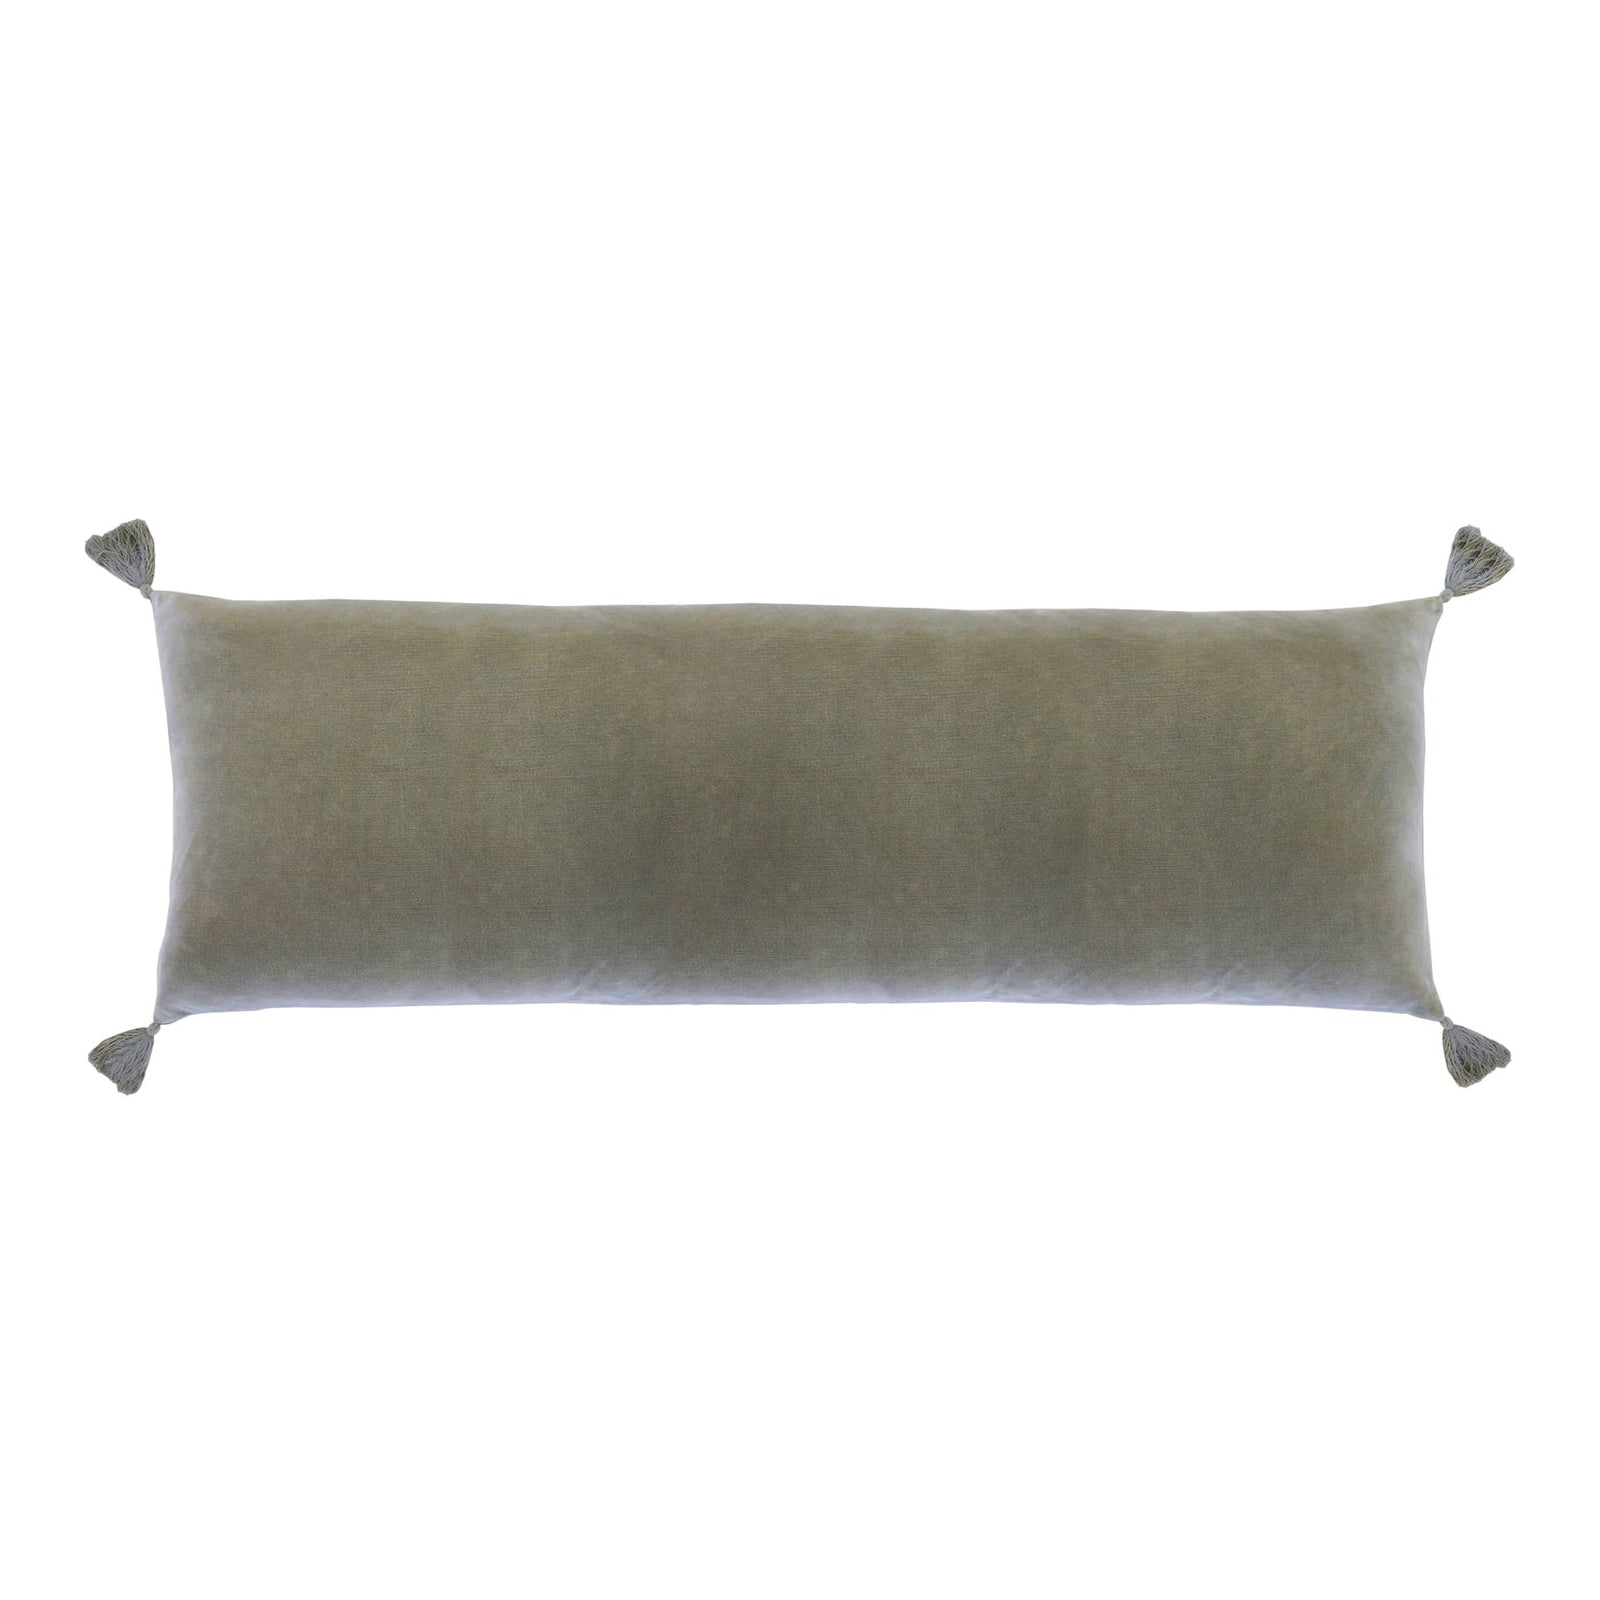 Chester Lumbar Pillow in Olive